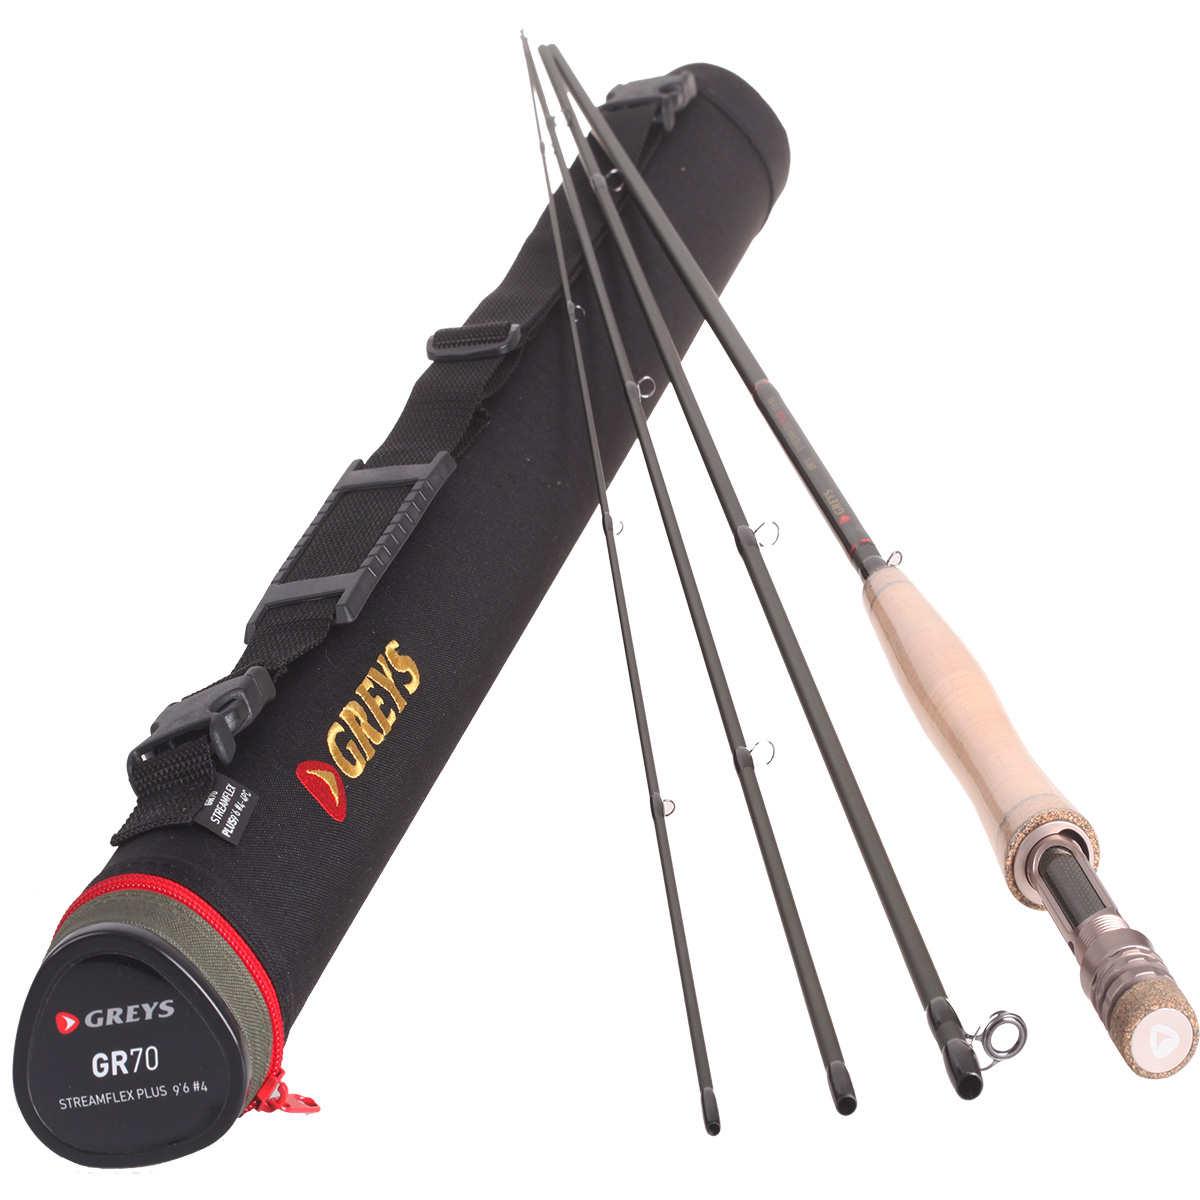 Greys gr70 streamflex 4 piece fly rod all sizes fly for Fishing rod game